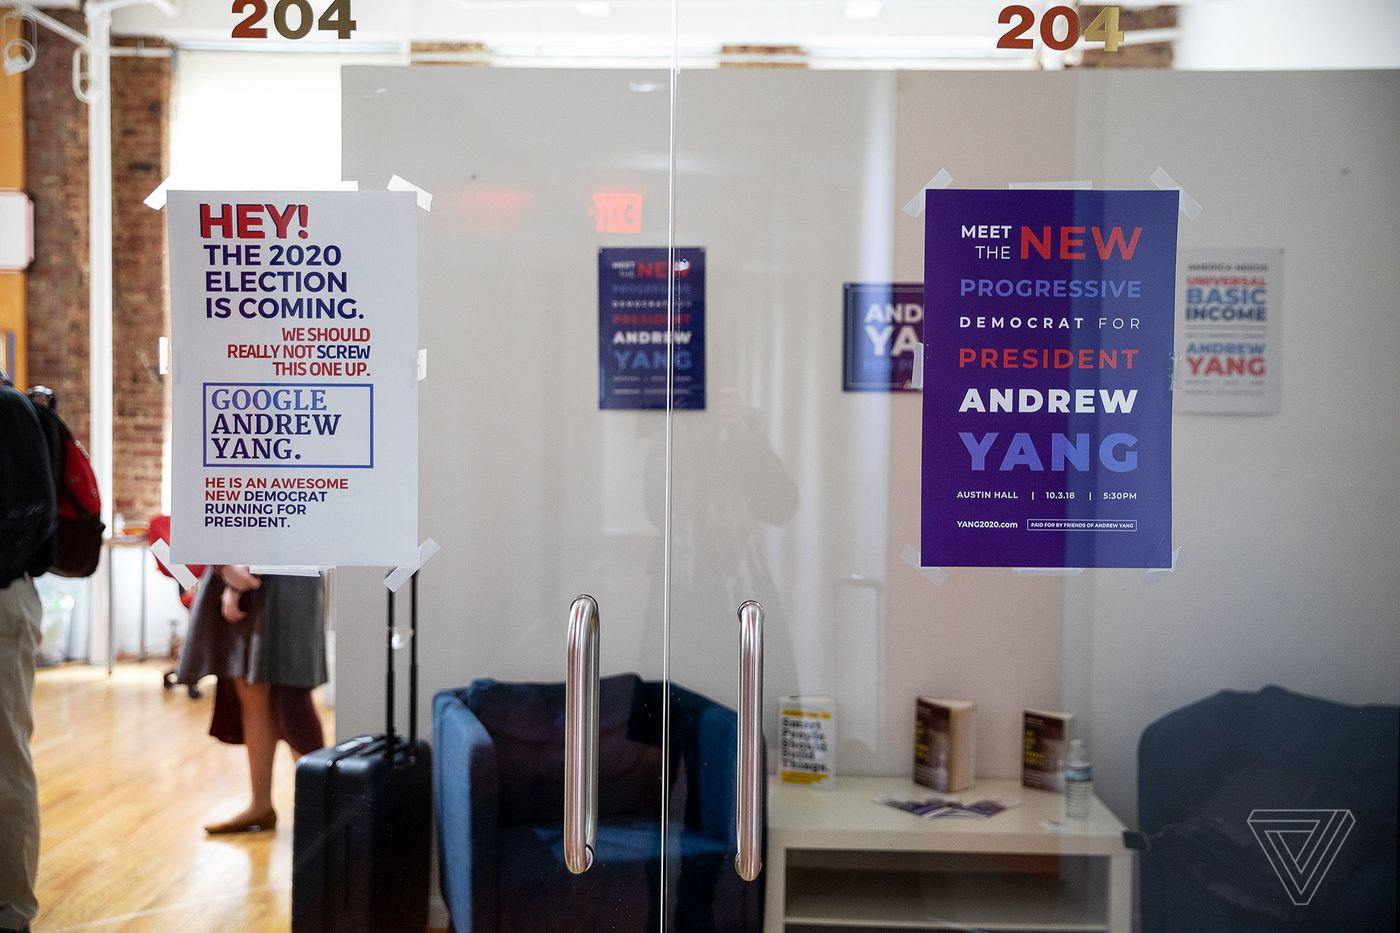 Andrew Yang is the candidate for the end of the world - The Verge